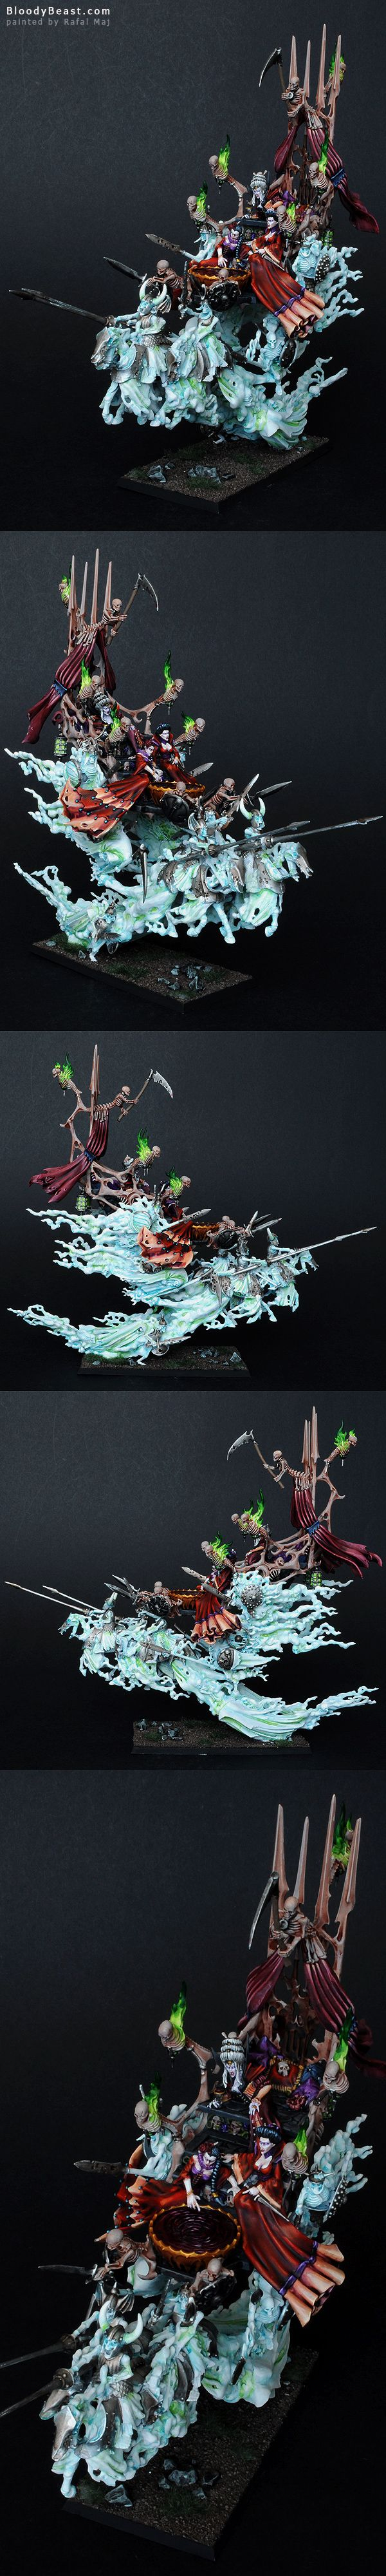 Vampire Counts Coven Throne painted by Rafal Maj (BloodyBeast.com)